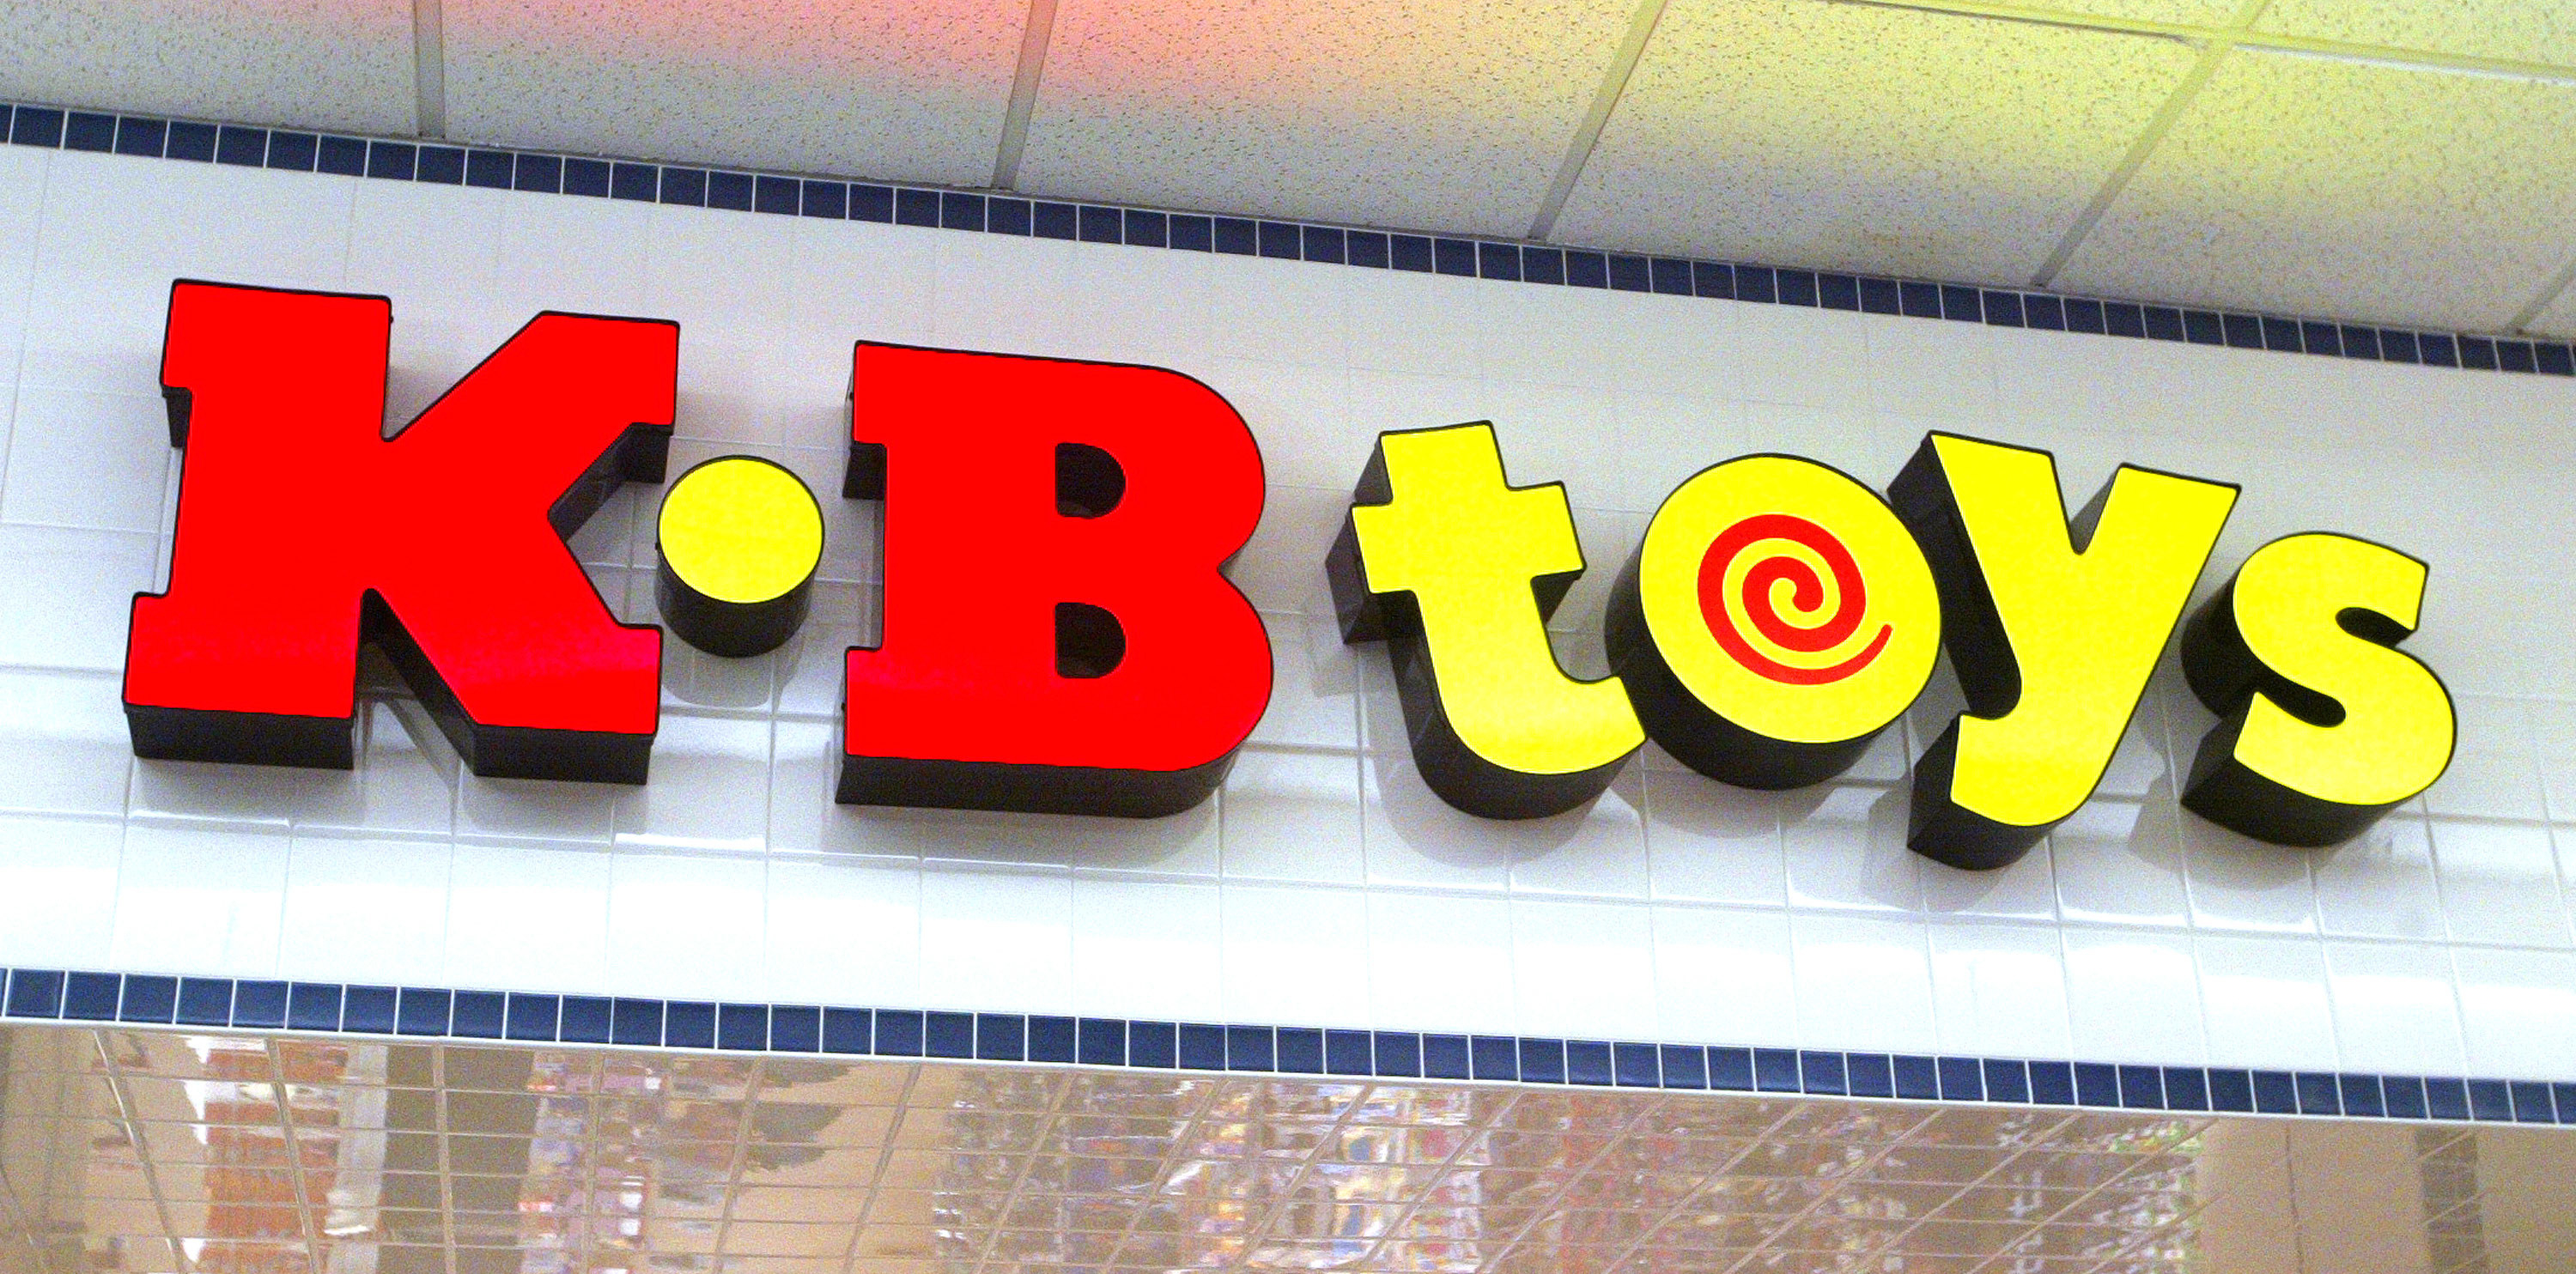 The red and yellow sign for KB Toys